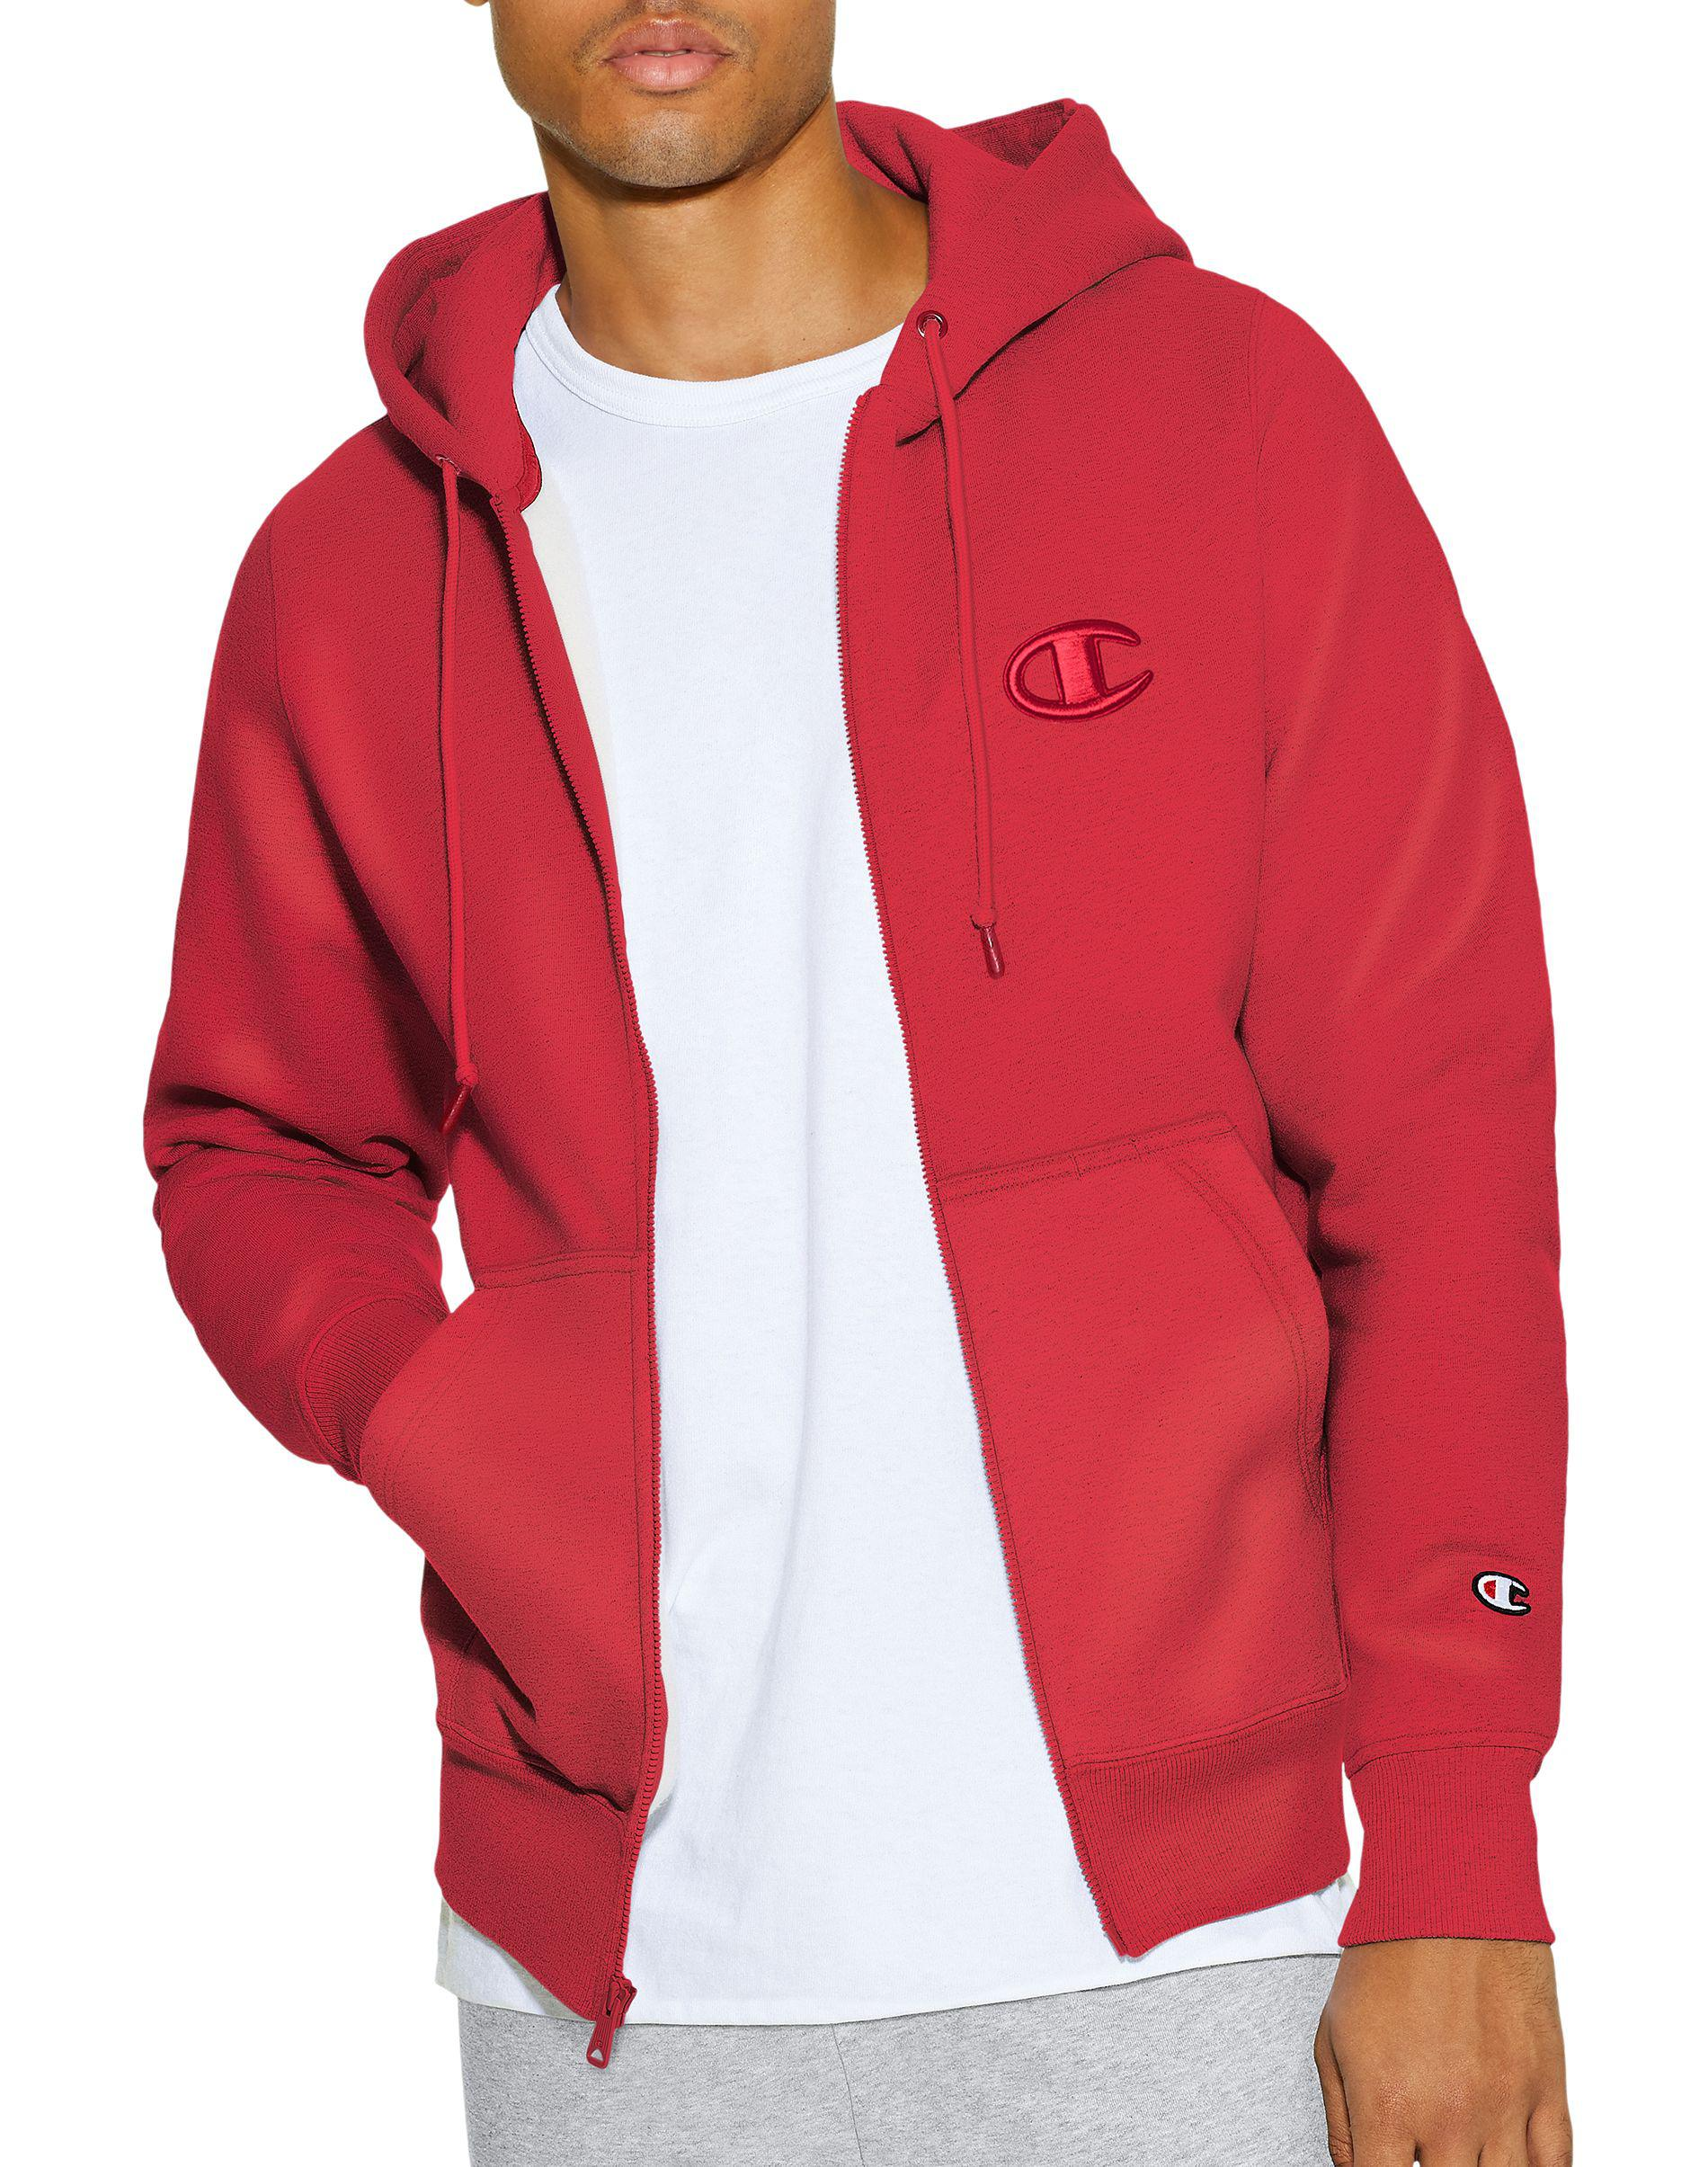 a7a6e2368b22 Champion - Red Lifetm Super Hood® 2.0 Men s Full Zip Hoodie for Men - Lyst.  View fullscreen